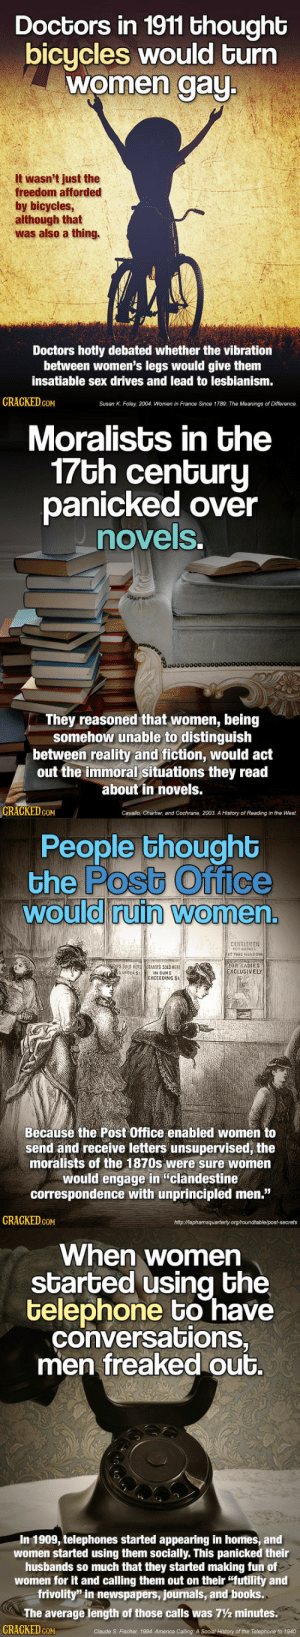 "virginiaisforhaters:Wow it's almost like most of human history has been about controlling women… or something…: Doctors in 1911 thought  bicycles would turn  women aU  It wasn't just the  freedom afforded  by bicycles  although that  was also a thing.  Doctors hotly debated whether the vibration  between women's legs would give them  insatiable sex drives and lead to lesbianism  GRAGKED GoM  Susan K. Foley, 2004, Women in France Since 1789: The Meanings of Difference.   Moralists in the  7Gh cenGuru  panicked over  novels  0o000000000  They reasoned that women, being  somehow unable to distinguish  between reality and fiction, would act  out the immoral situations they read  about in novels.  GRAGKED.GOM  Cavallo, Chartier, and Cochrane, 2003. A History of Reading in the West.   People thoughb  the Postb Office  would ruin Women  0  0  CENTLEMENl  FOR LADIES  XCLUSİVELY  SUNDER S  IN SUMS  EXCEEDING SI  Becausé the Post Office enabled women to  send and receive letters unsupervised, the  moralists of the 1870s were sure women  would engage in ""clandestine  correspondence with unprincipled men.""  GRAGKED coM  httpMaphamsquarterly org/roundtable/post-secrets   When women  started using bhe  telephone bo have  conversations,  men freaked out.  In 1909, telephones started appearing in homes, and  women started using them socially. This panicked their  husbands so much that they started making fun of  women for it and calling them out on their ""futility and  frivolity"" in newspapers, journals, and books.  The average length of those calls was 7½ minutes.  CRACKED cON  Claude S. Fischer, 1994. America Calling: A Social History of the Telephone to 1940 virginiaisforhaters:Wow it's almost like most of human history has been about controlling women… or something…"